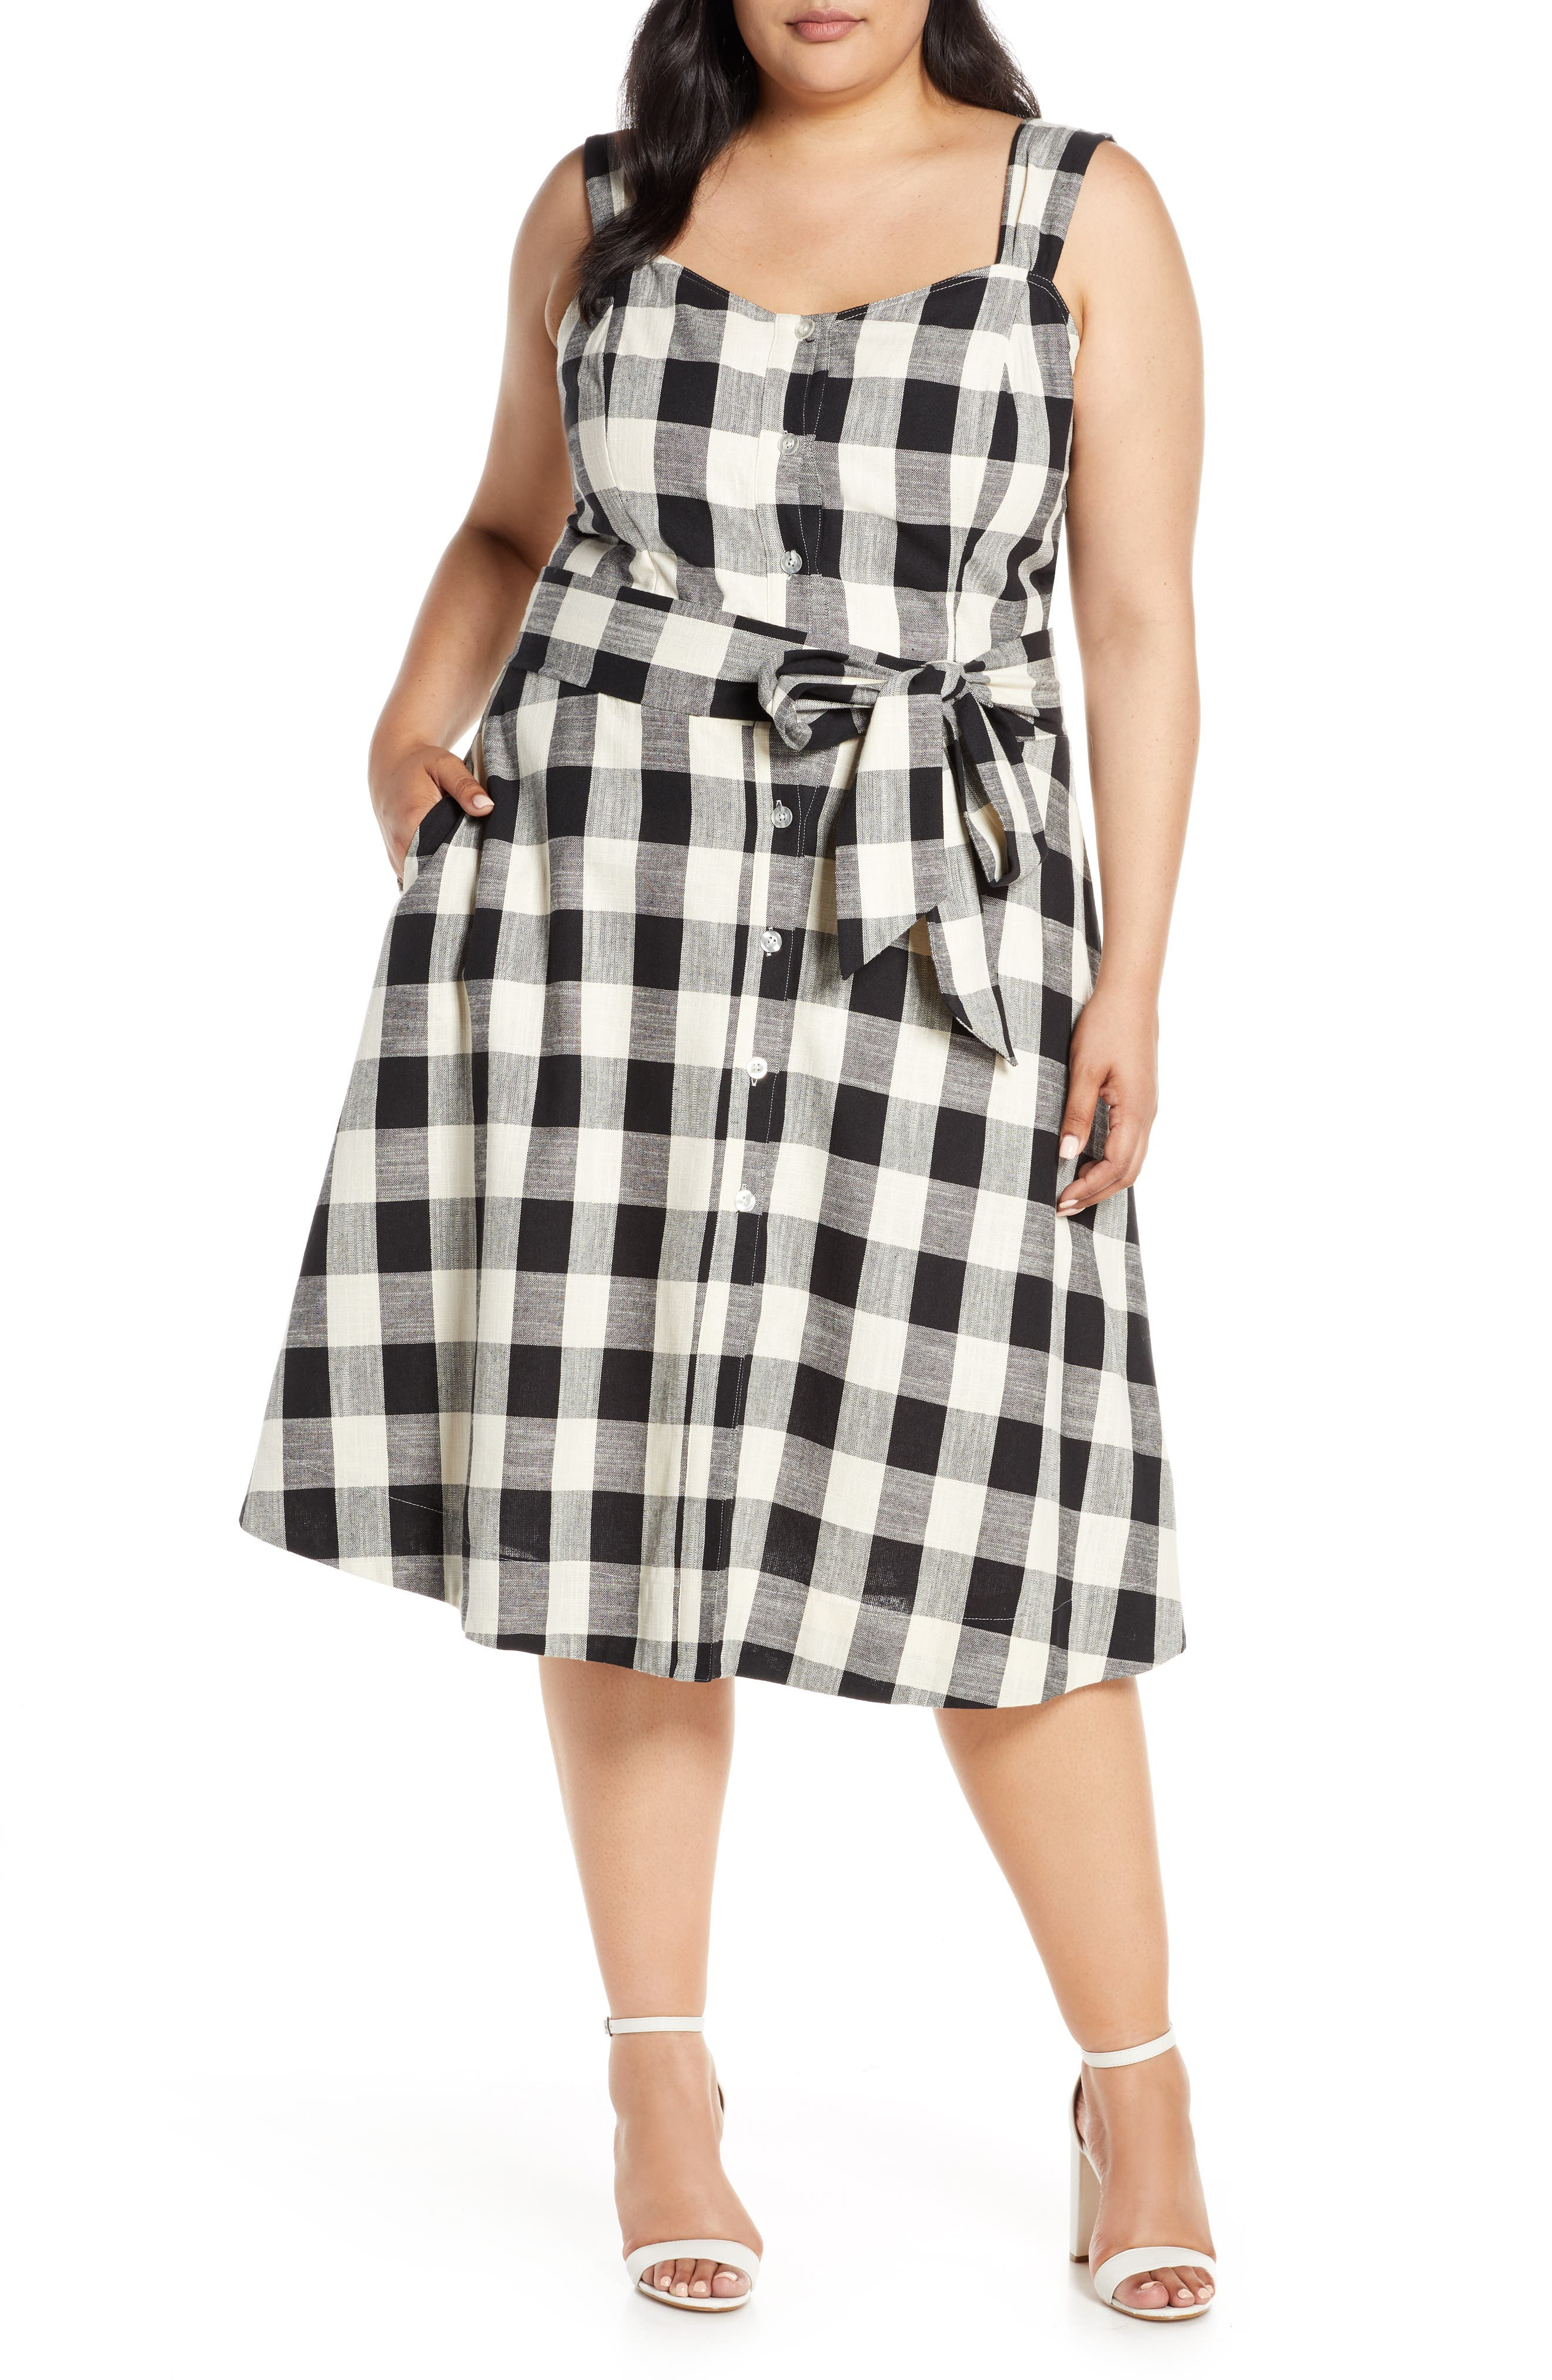 Plus Size Rachel Roy Collection Gingham Cotton Sundress, Ivory